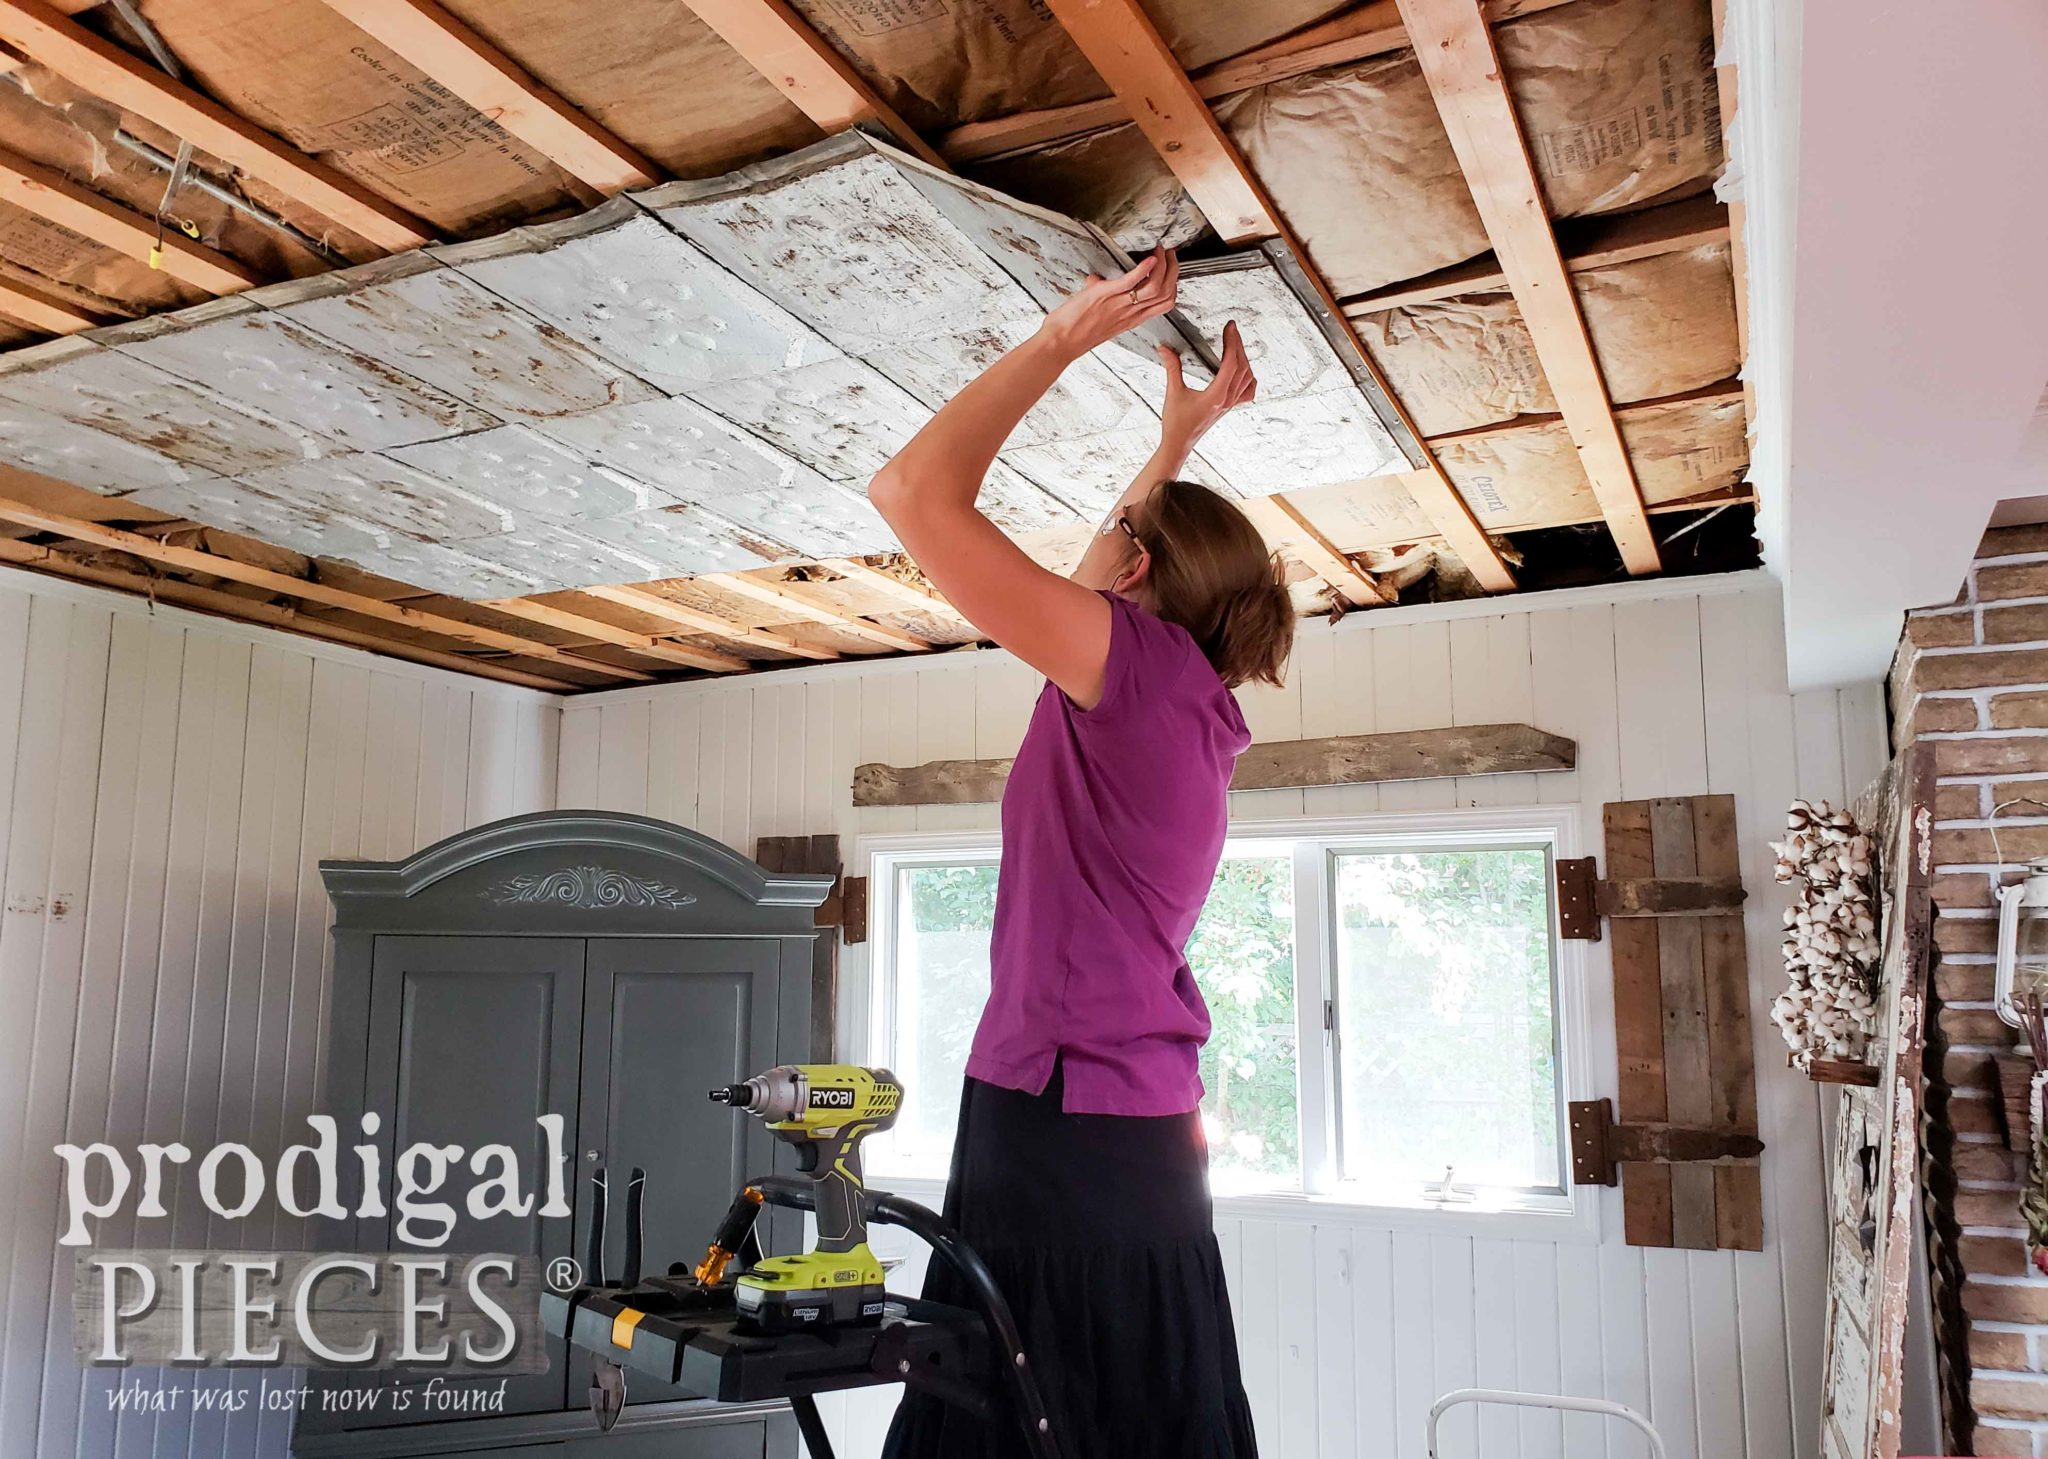 Larissa of Prodigal Pieces Installing Antique Barn Roof Shingles on Coffered Ceiling | prodigalpieces.com